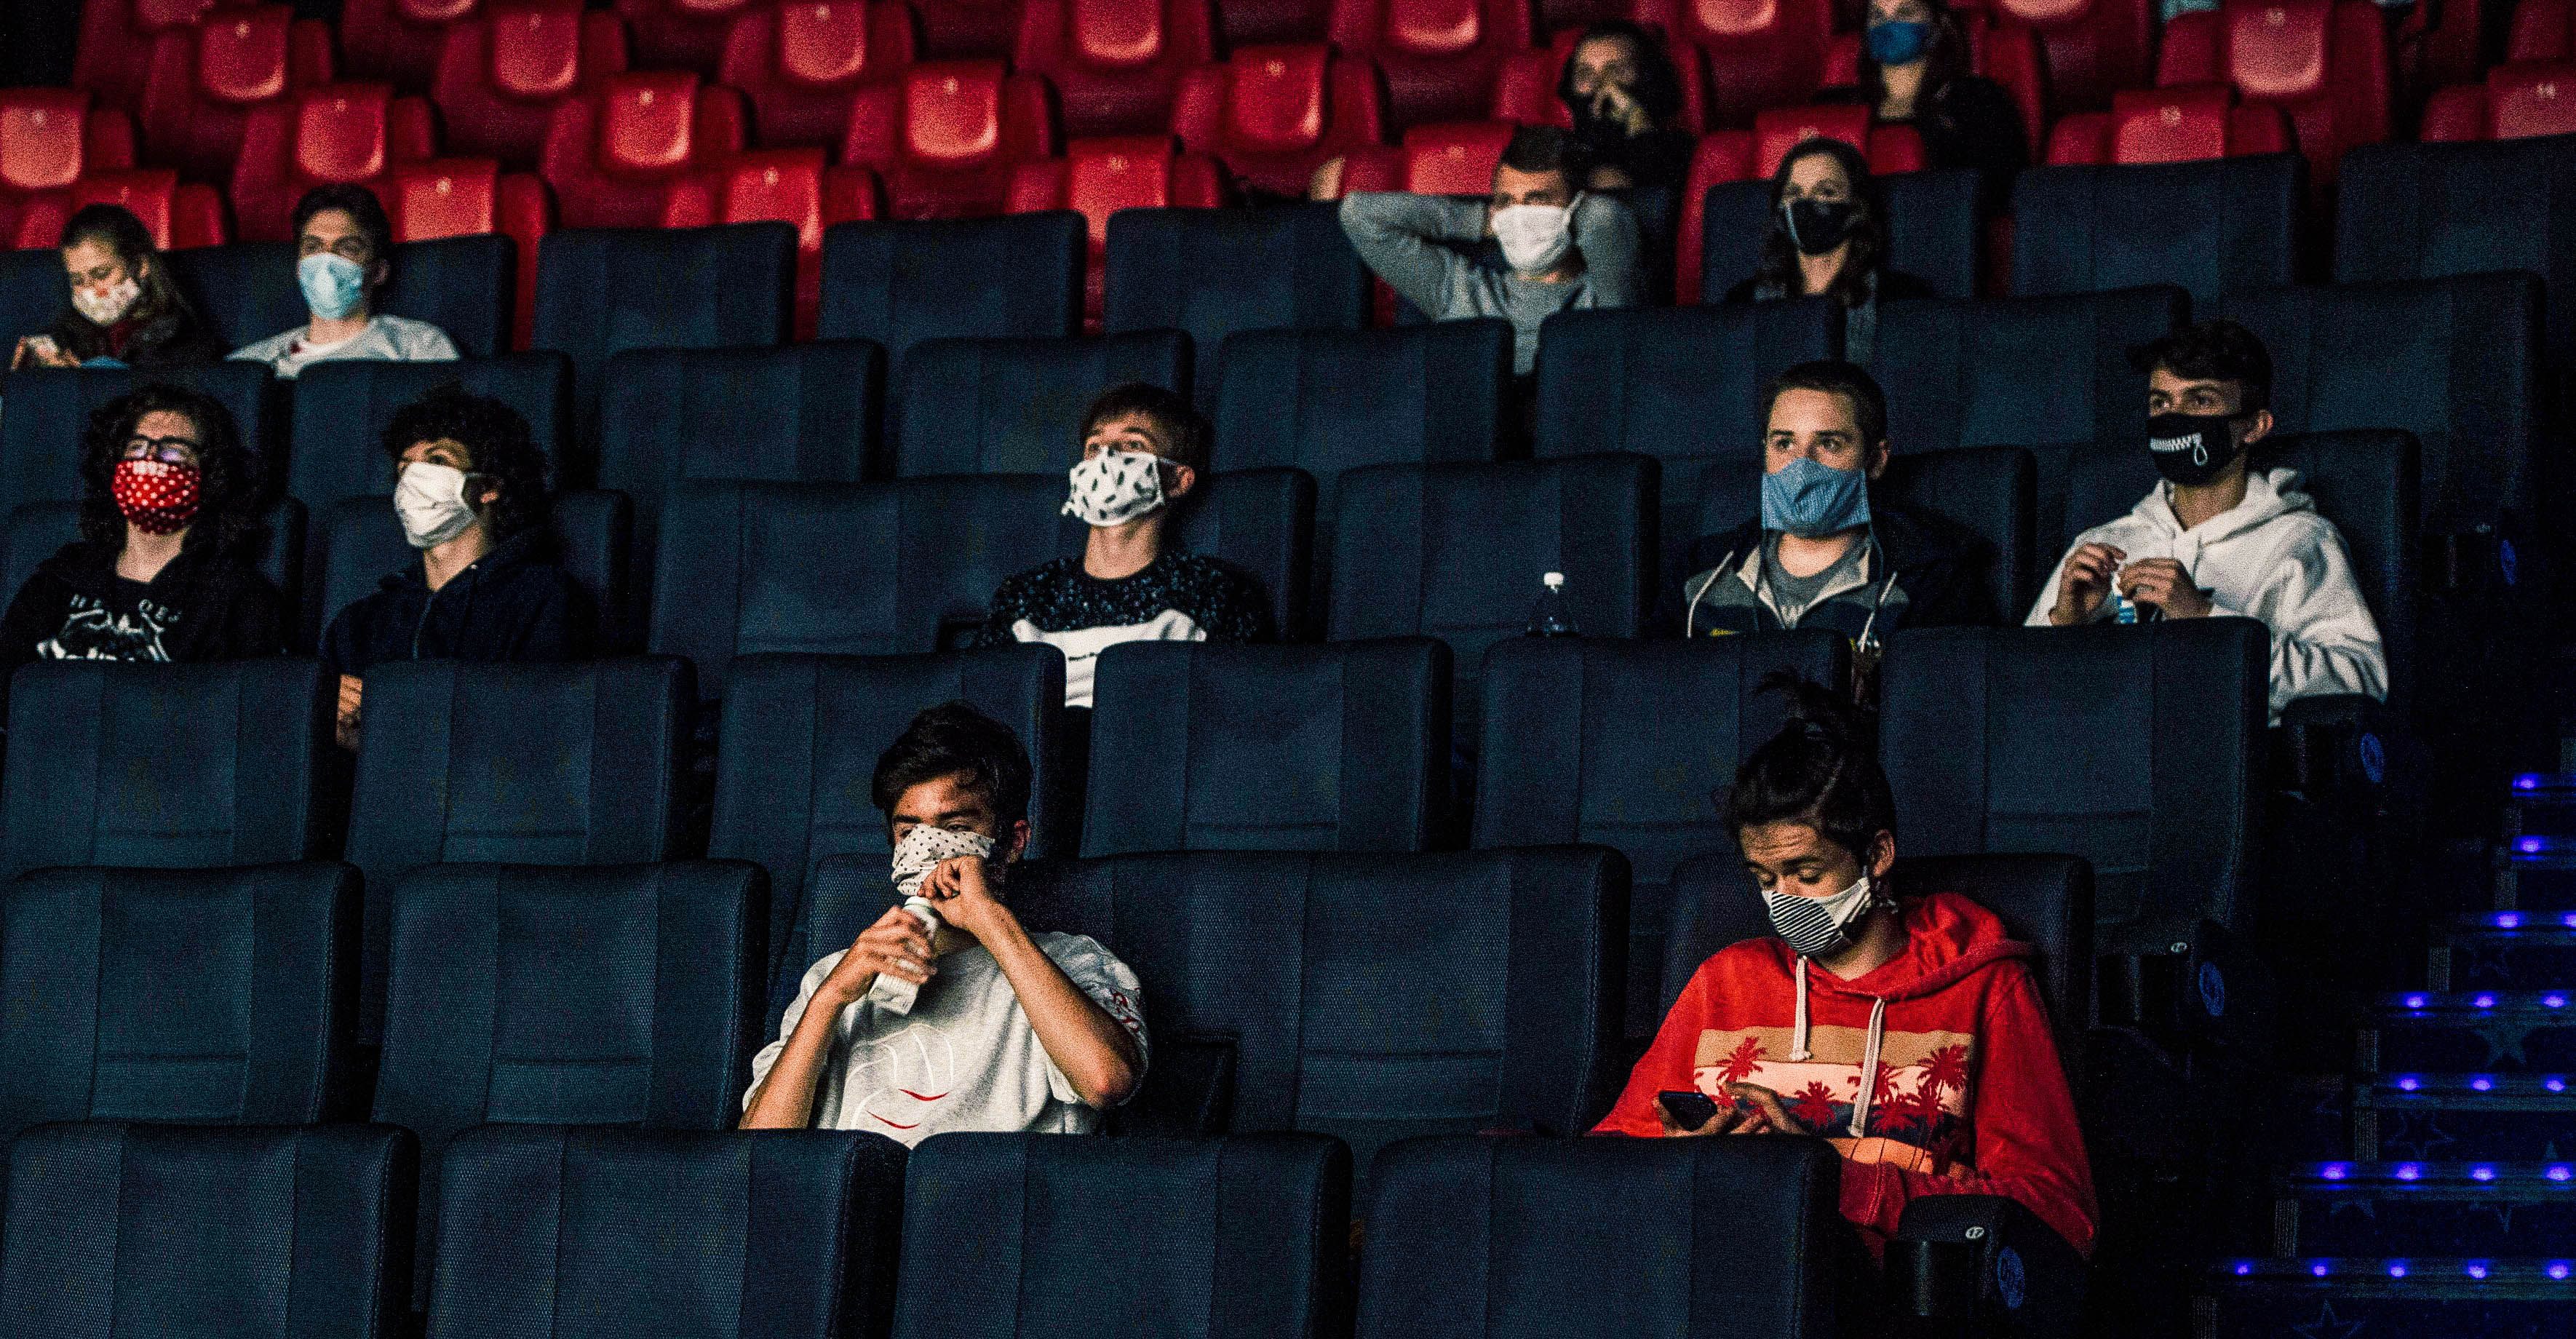 People wearing masks inside of a movie theater.